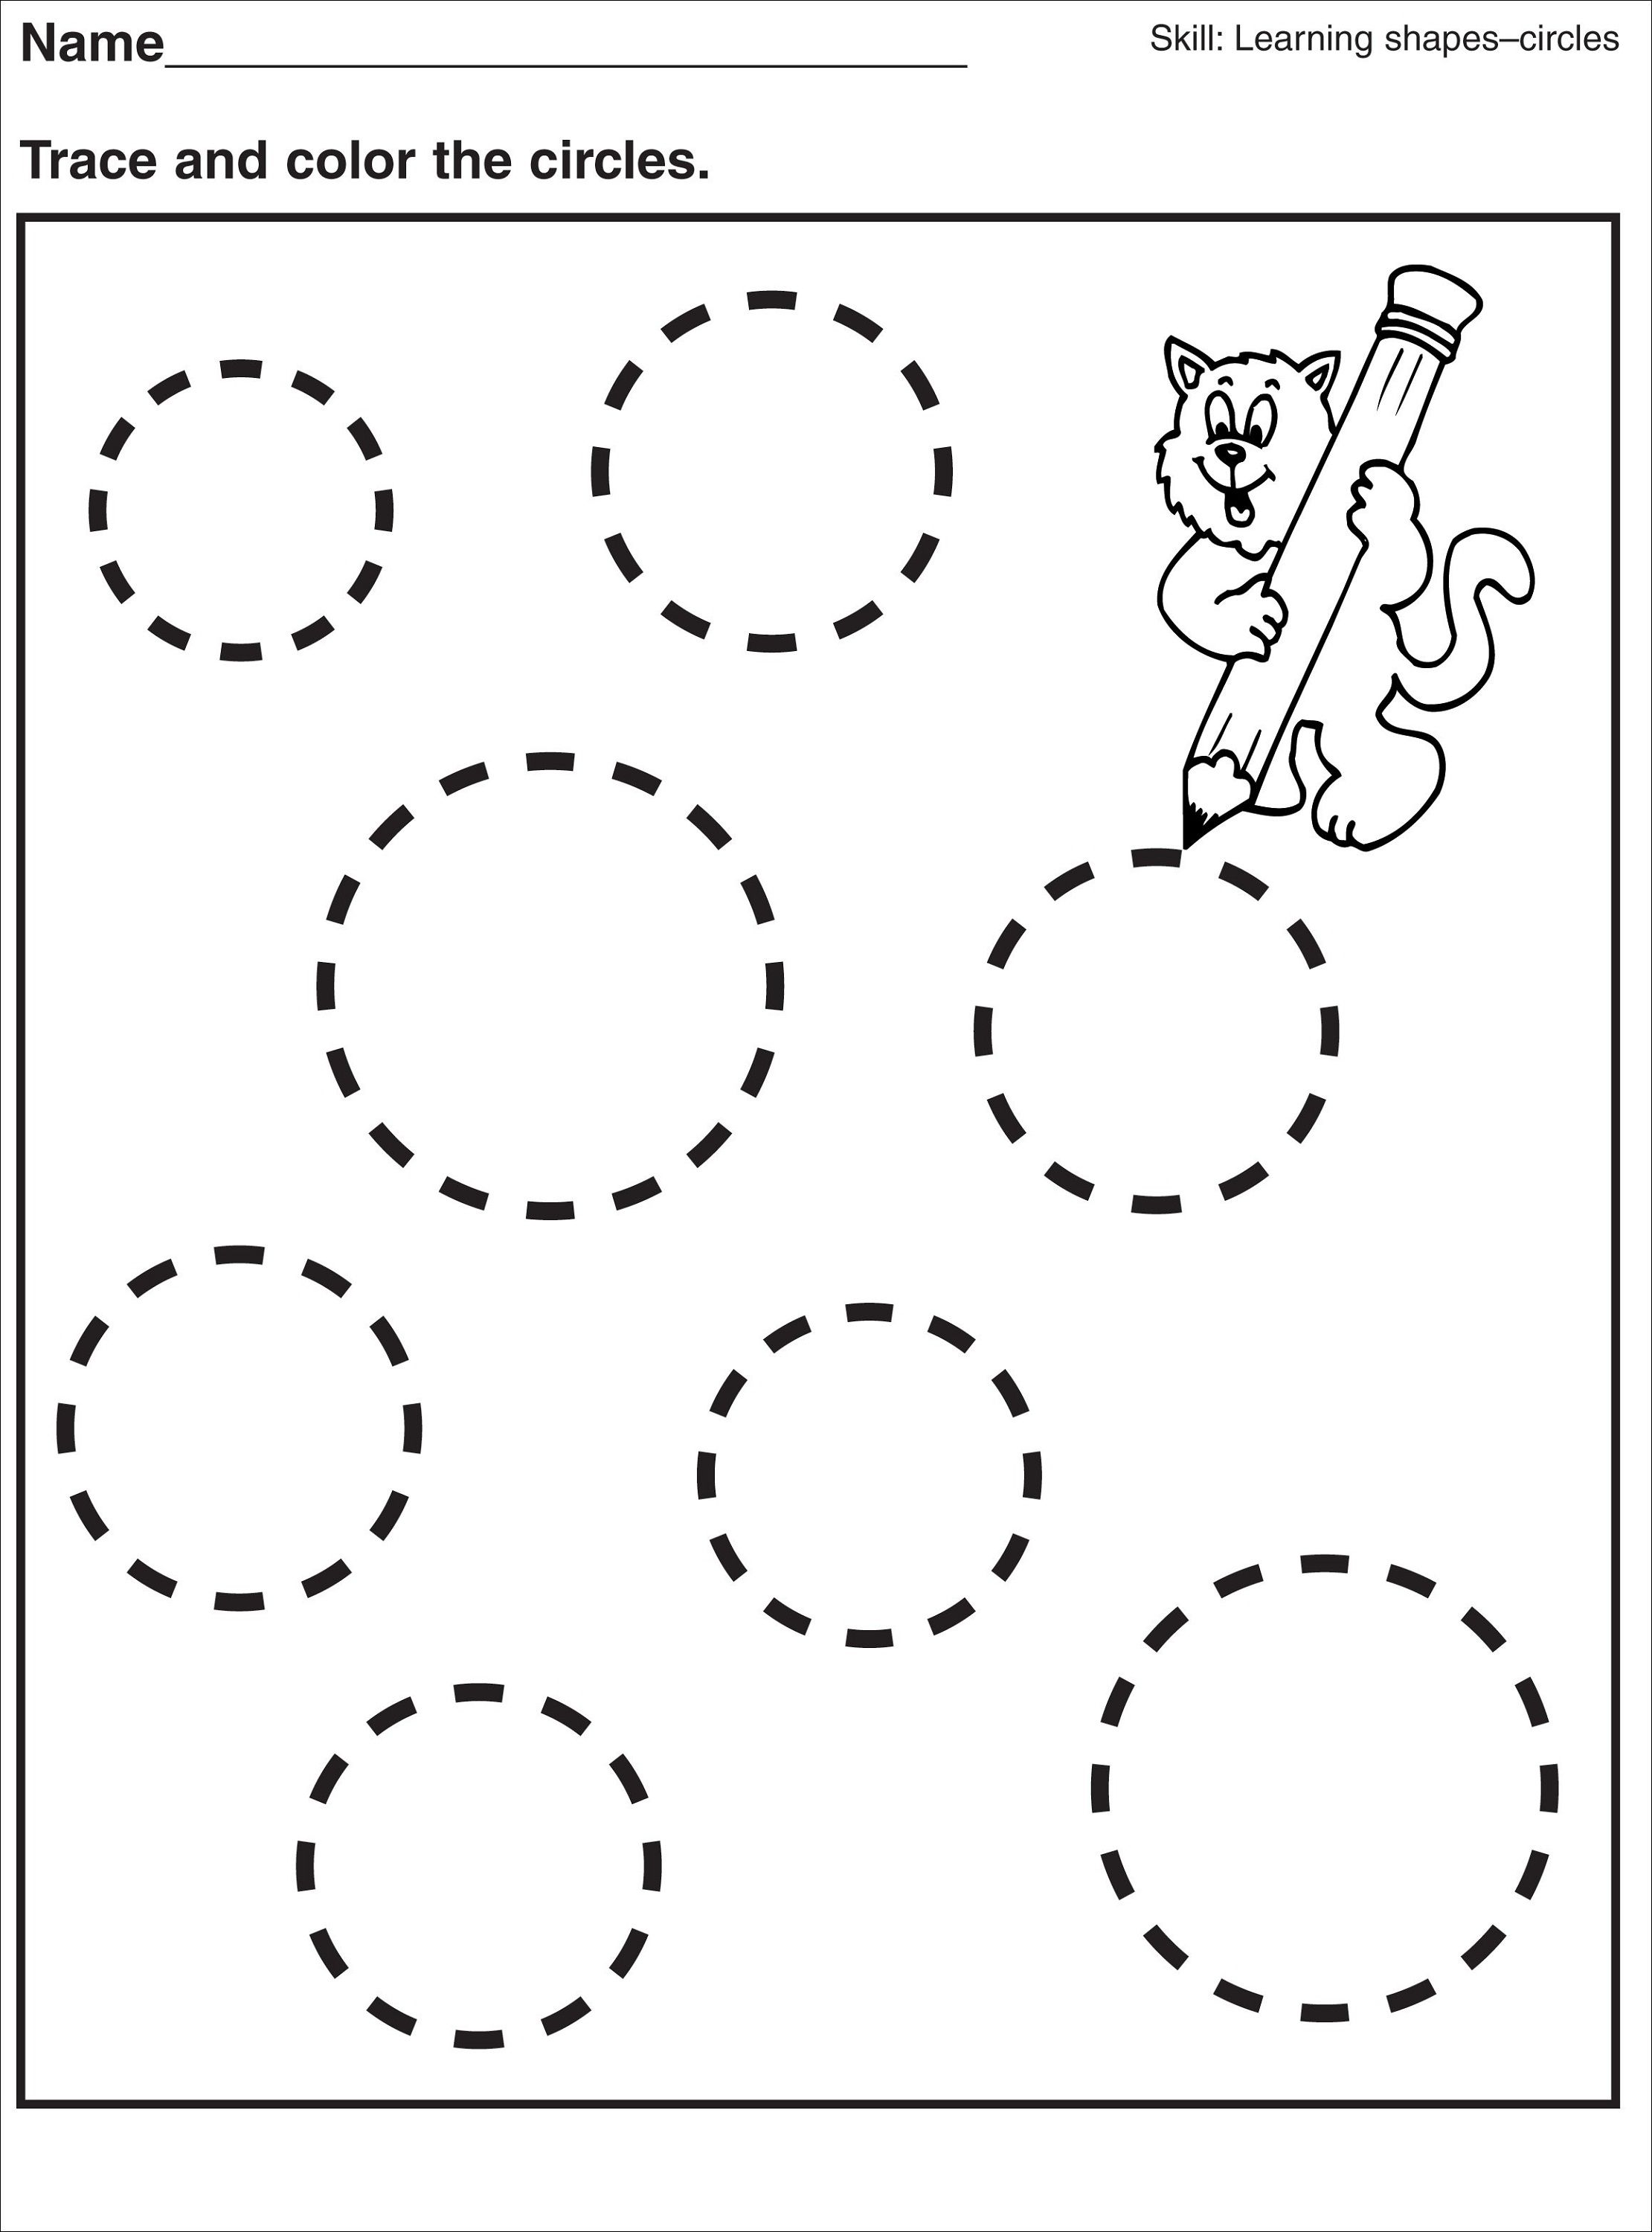 tracing circle worksheets for preschool activity shelter